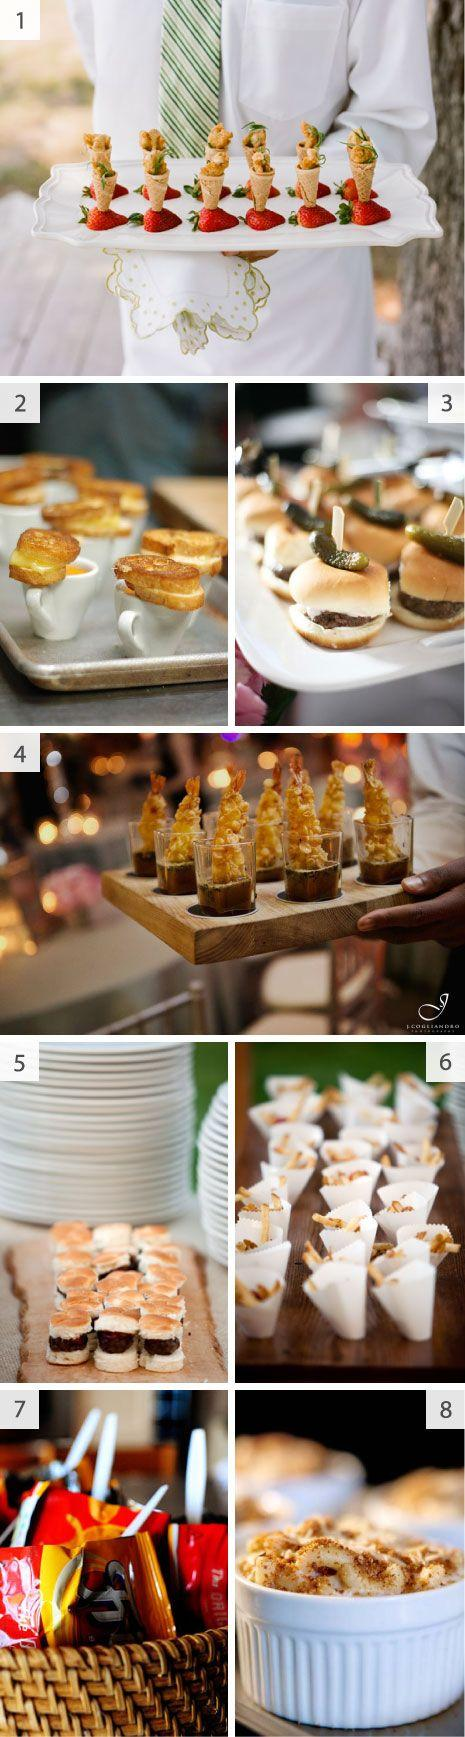 Wedding - Foodies